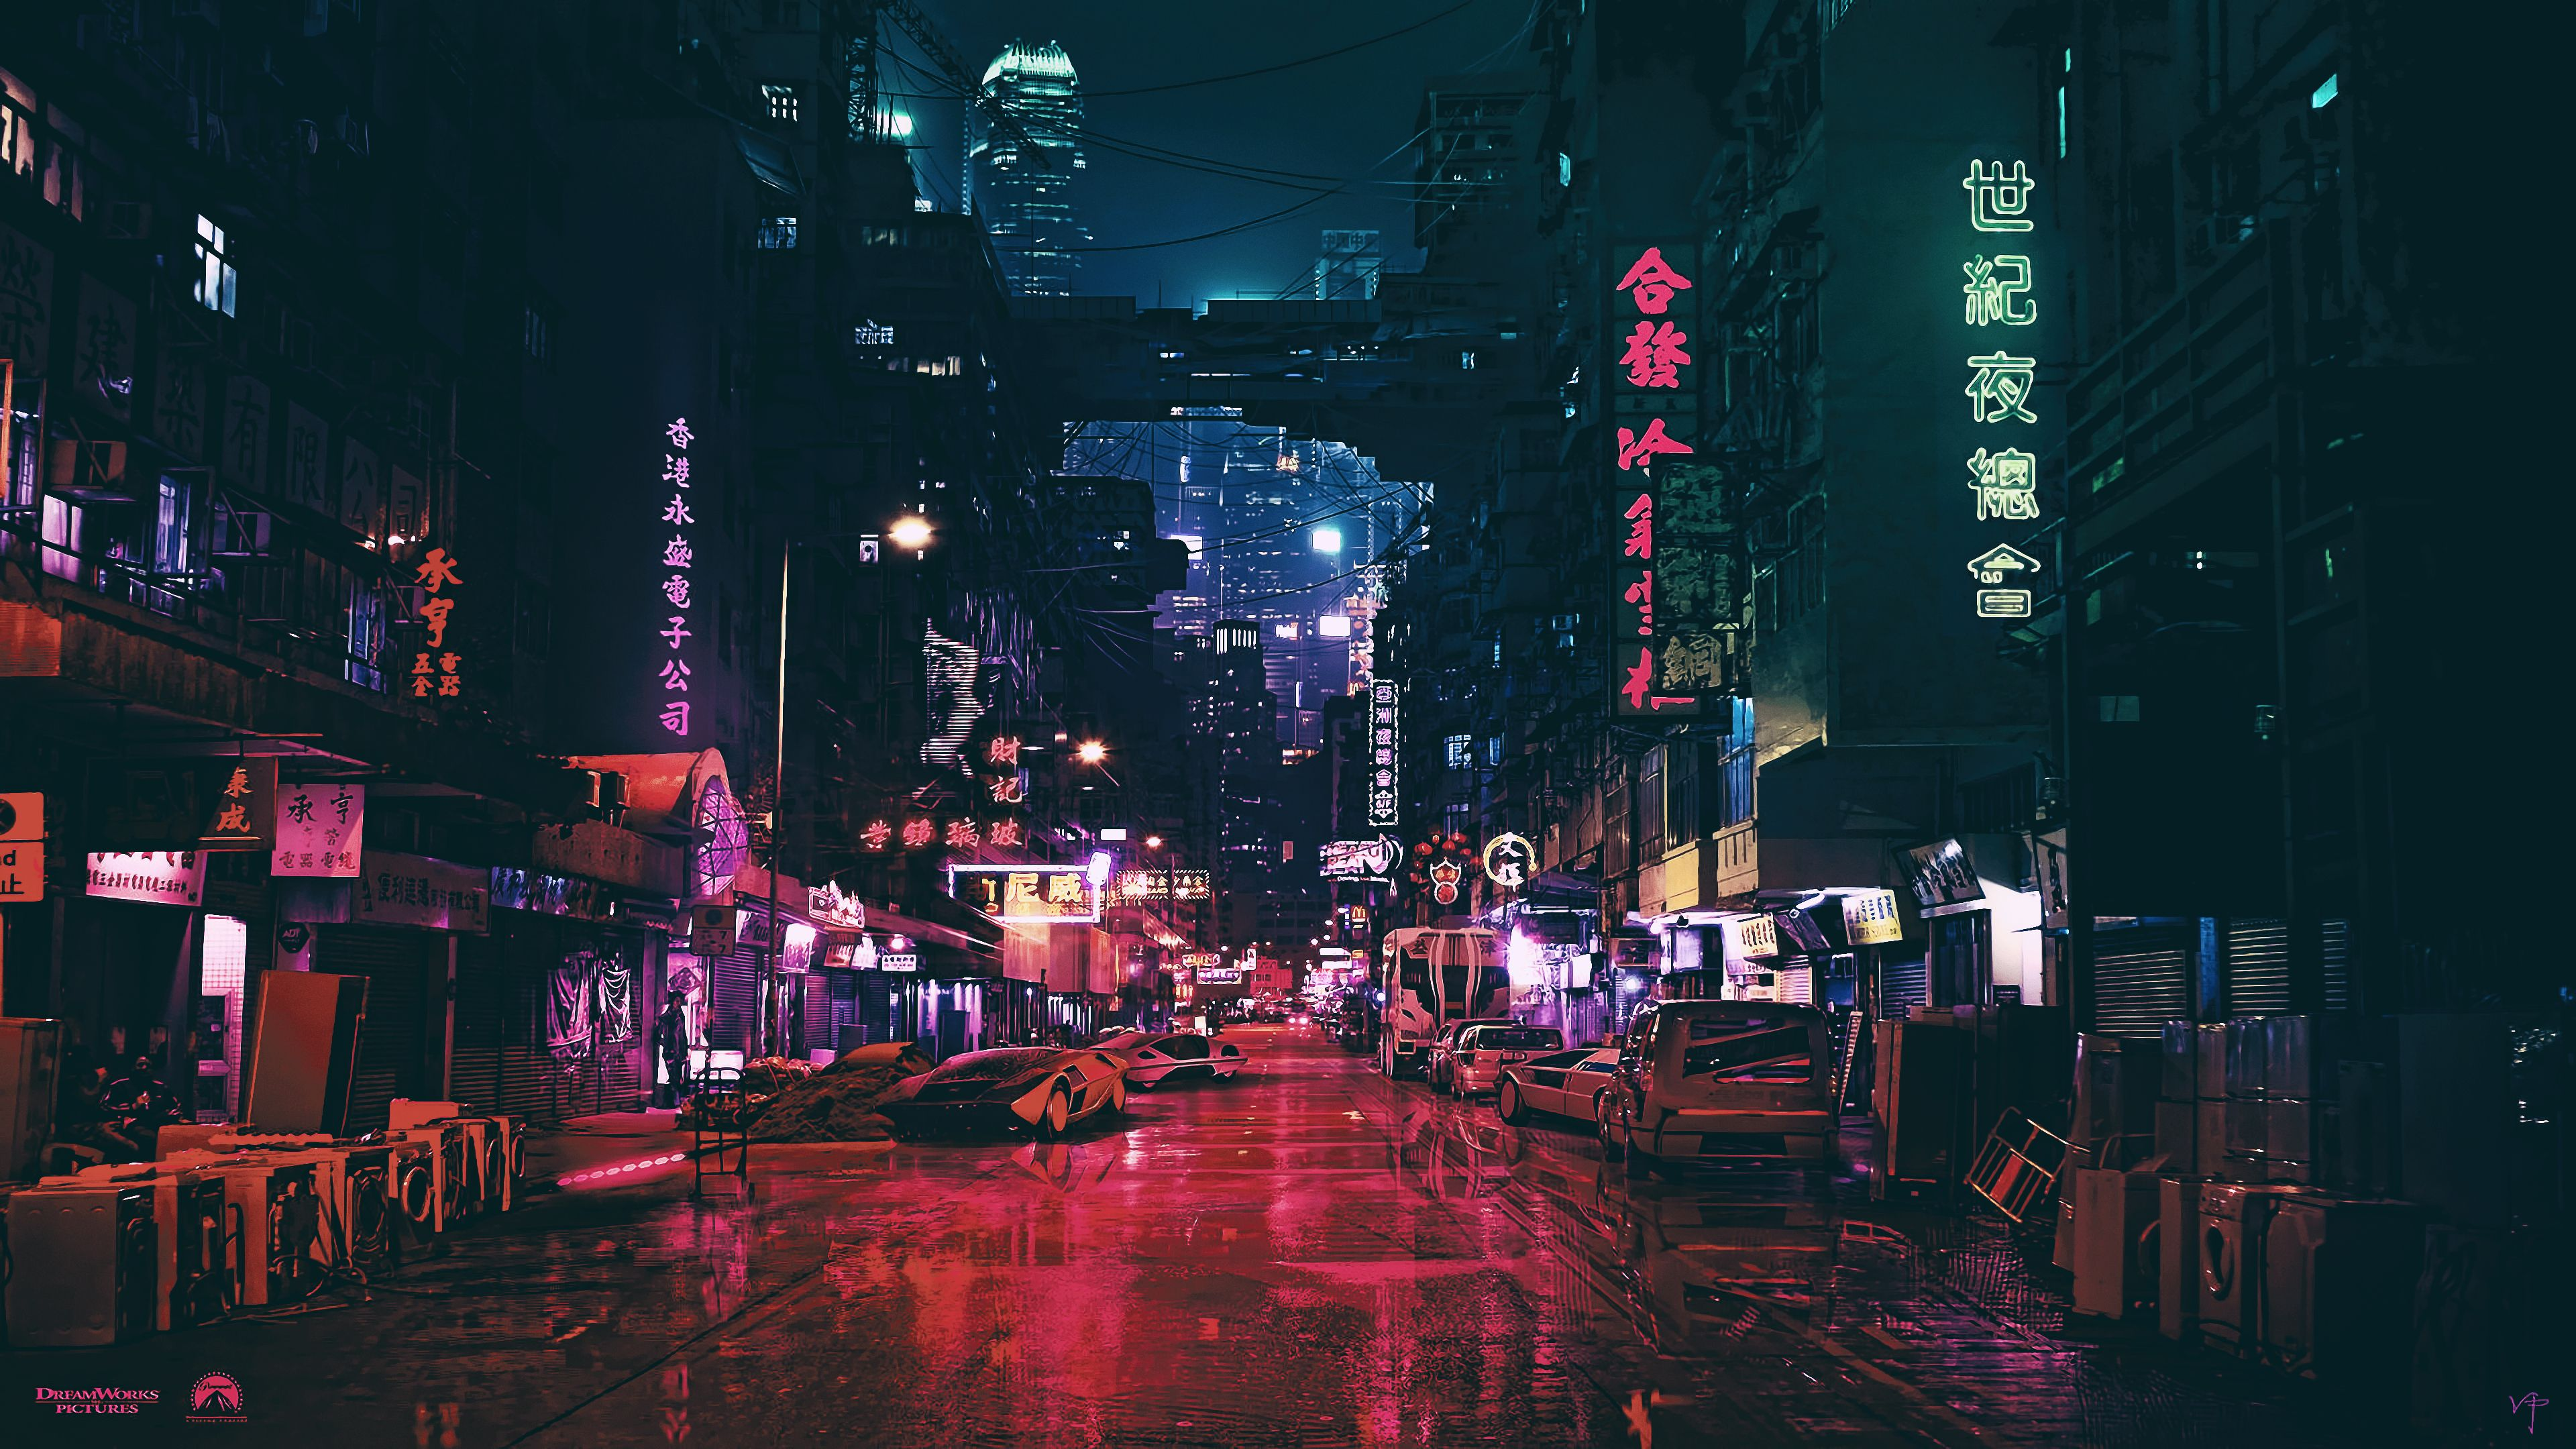 General 3840x2160 night artwork futuristic city cyberpunk cyber